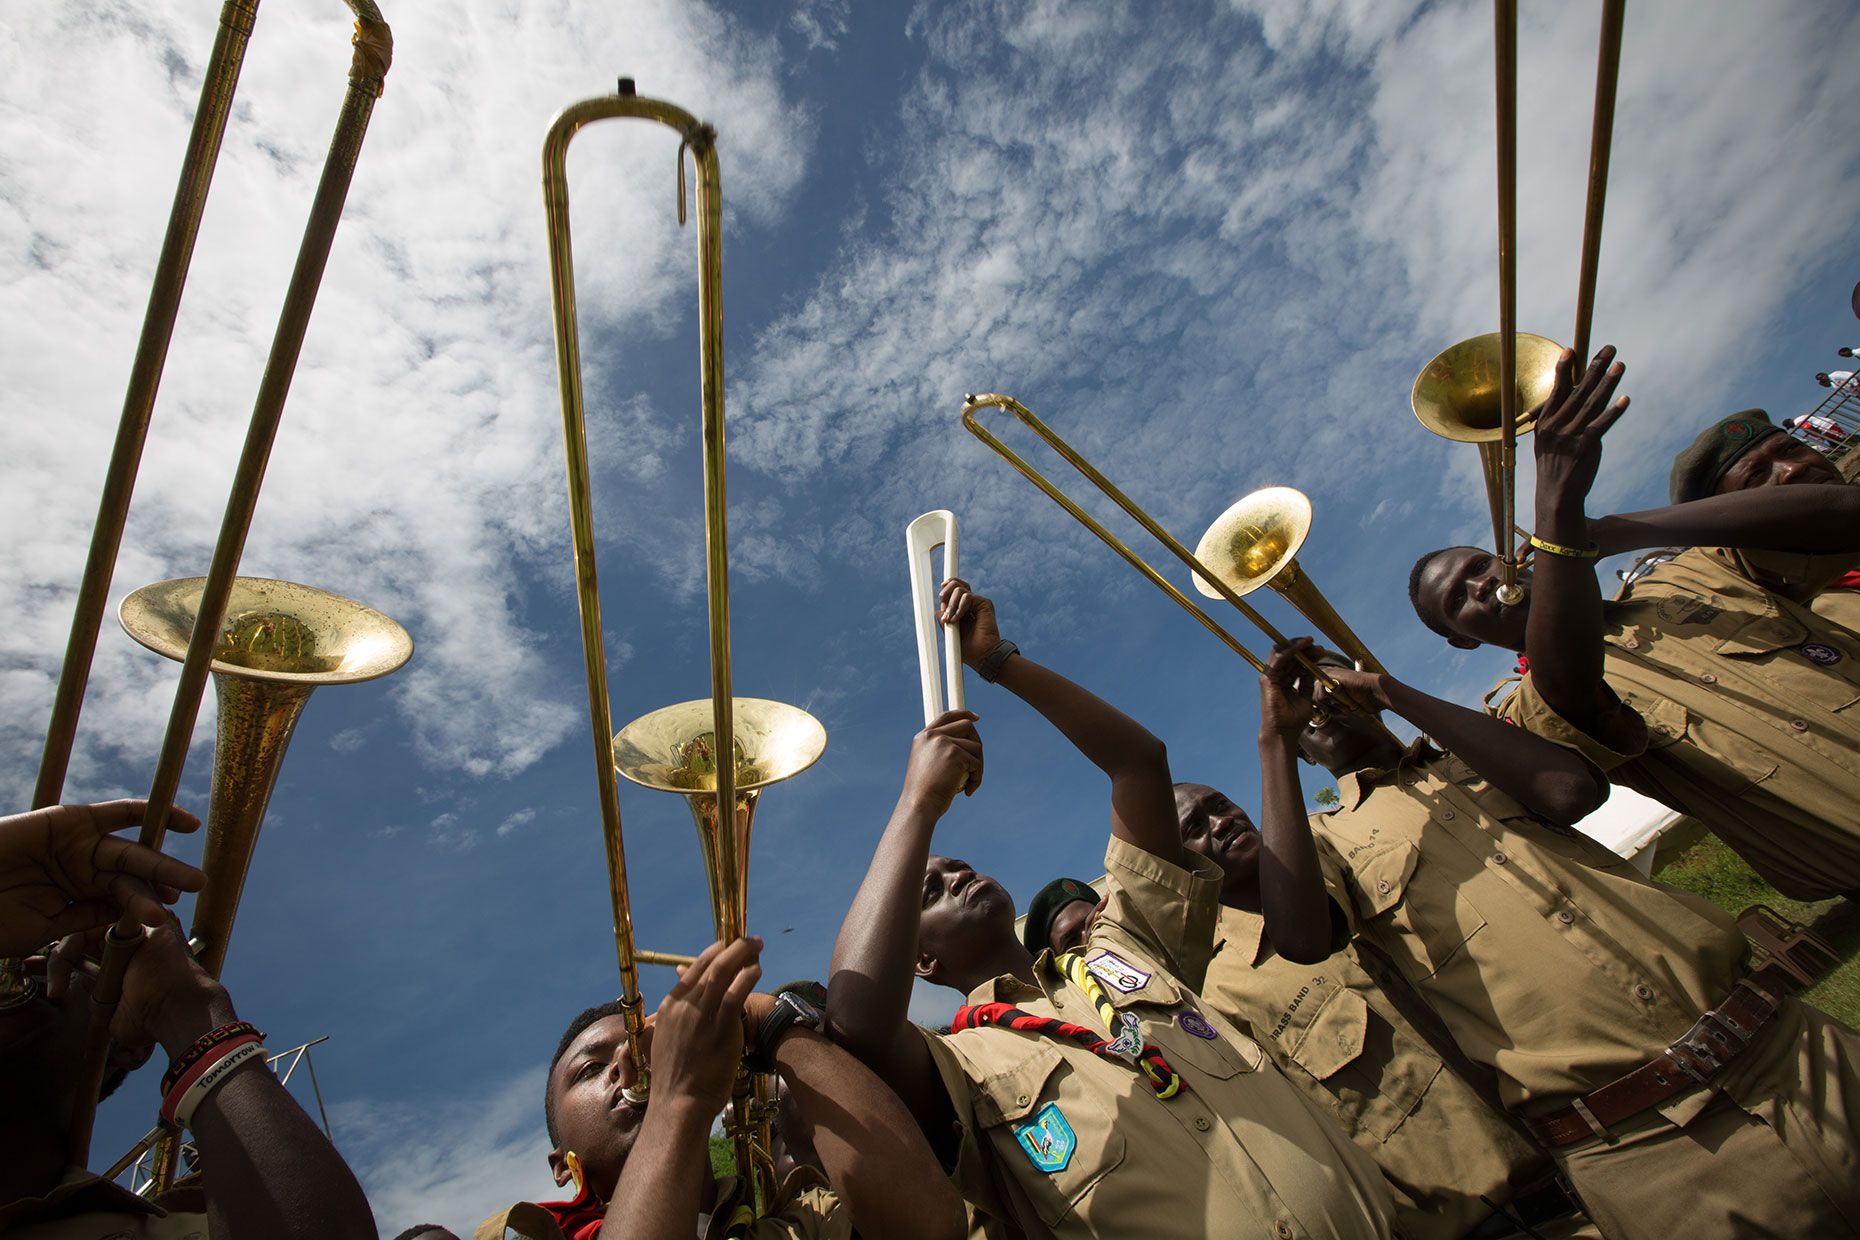 School band play brass instruments in Uganda, by Scotland photographer